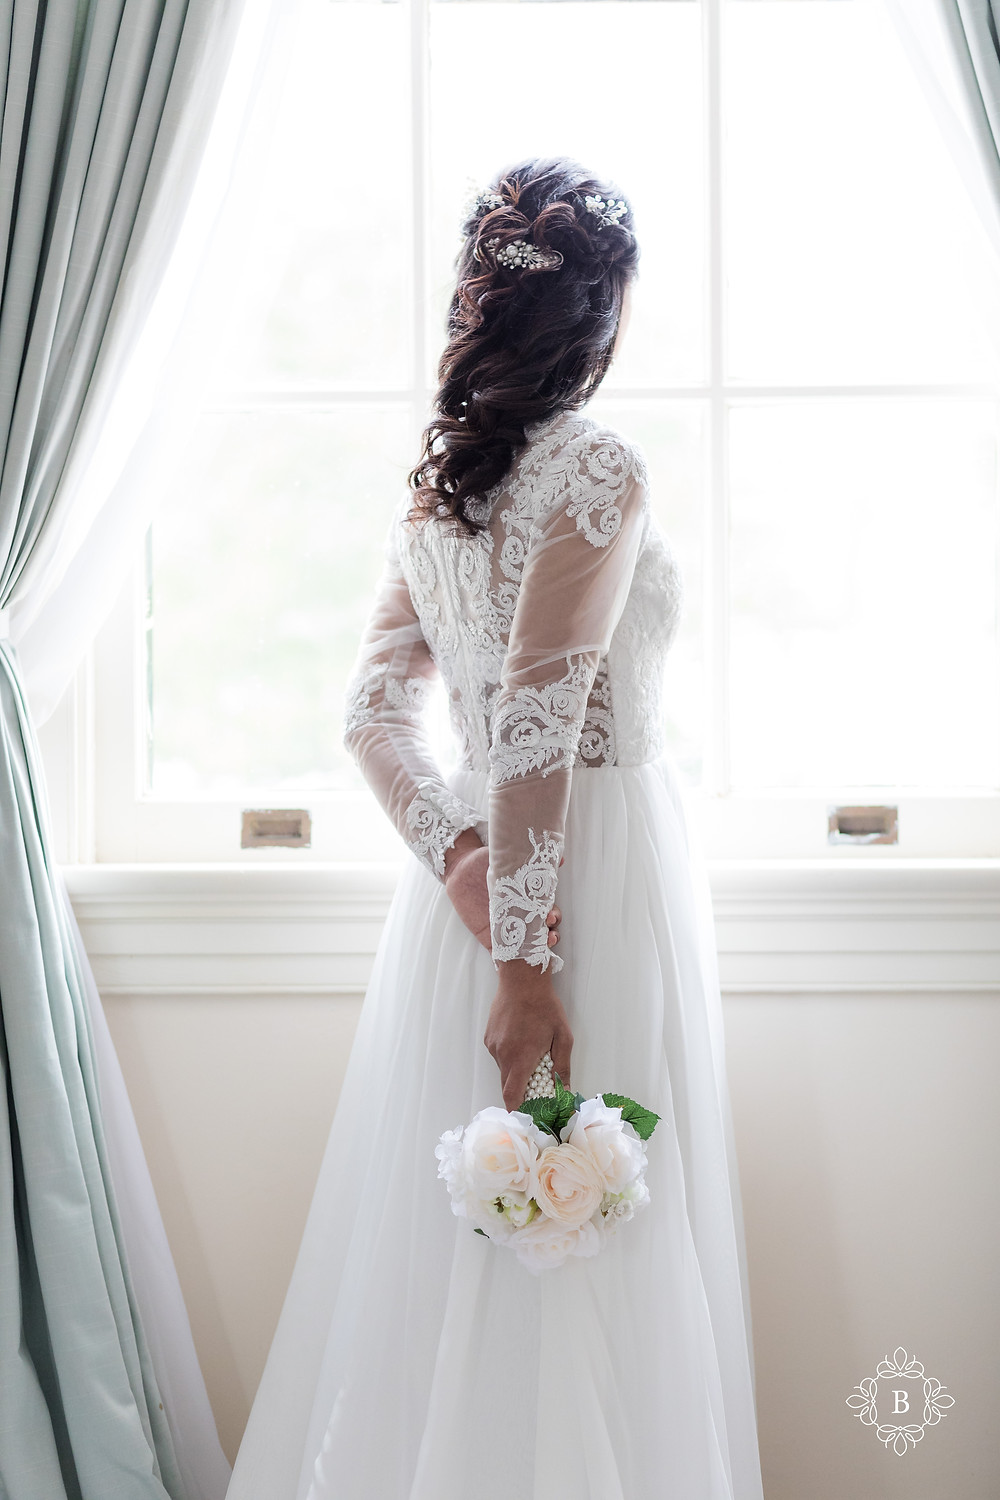 Rust Manor House bride prep elegant dress bride looking out window